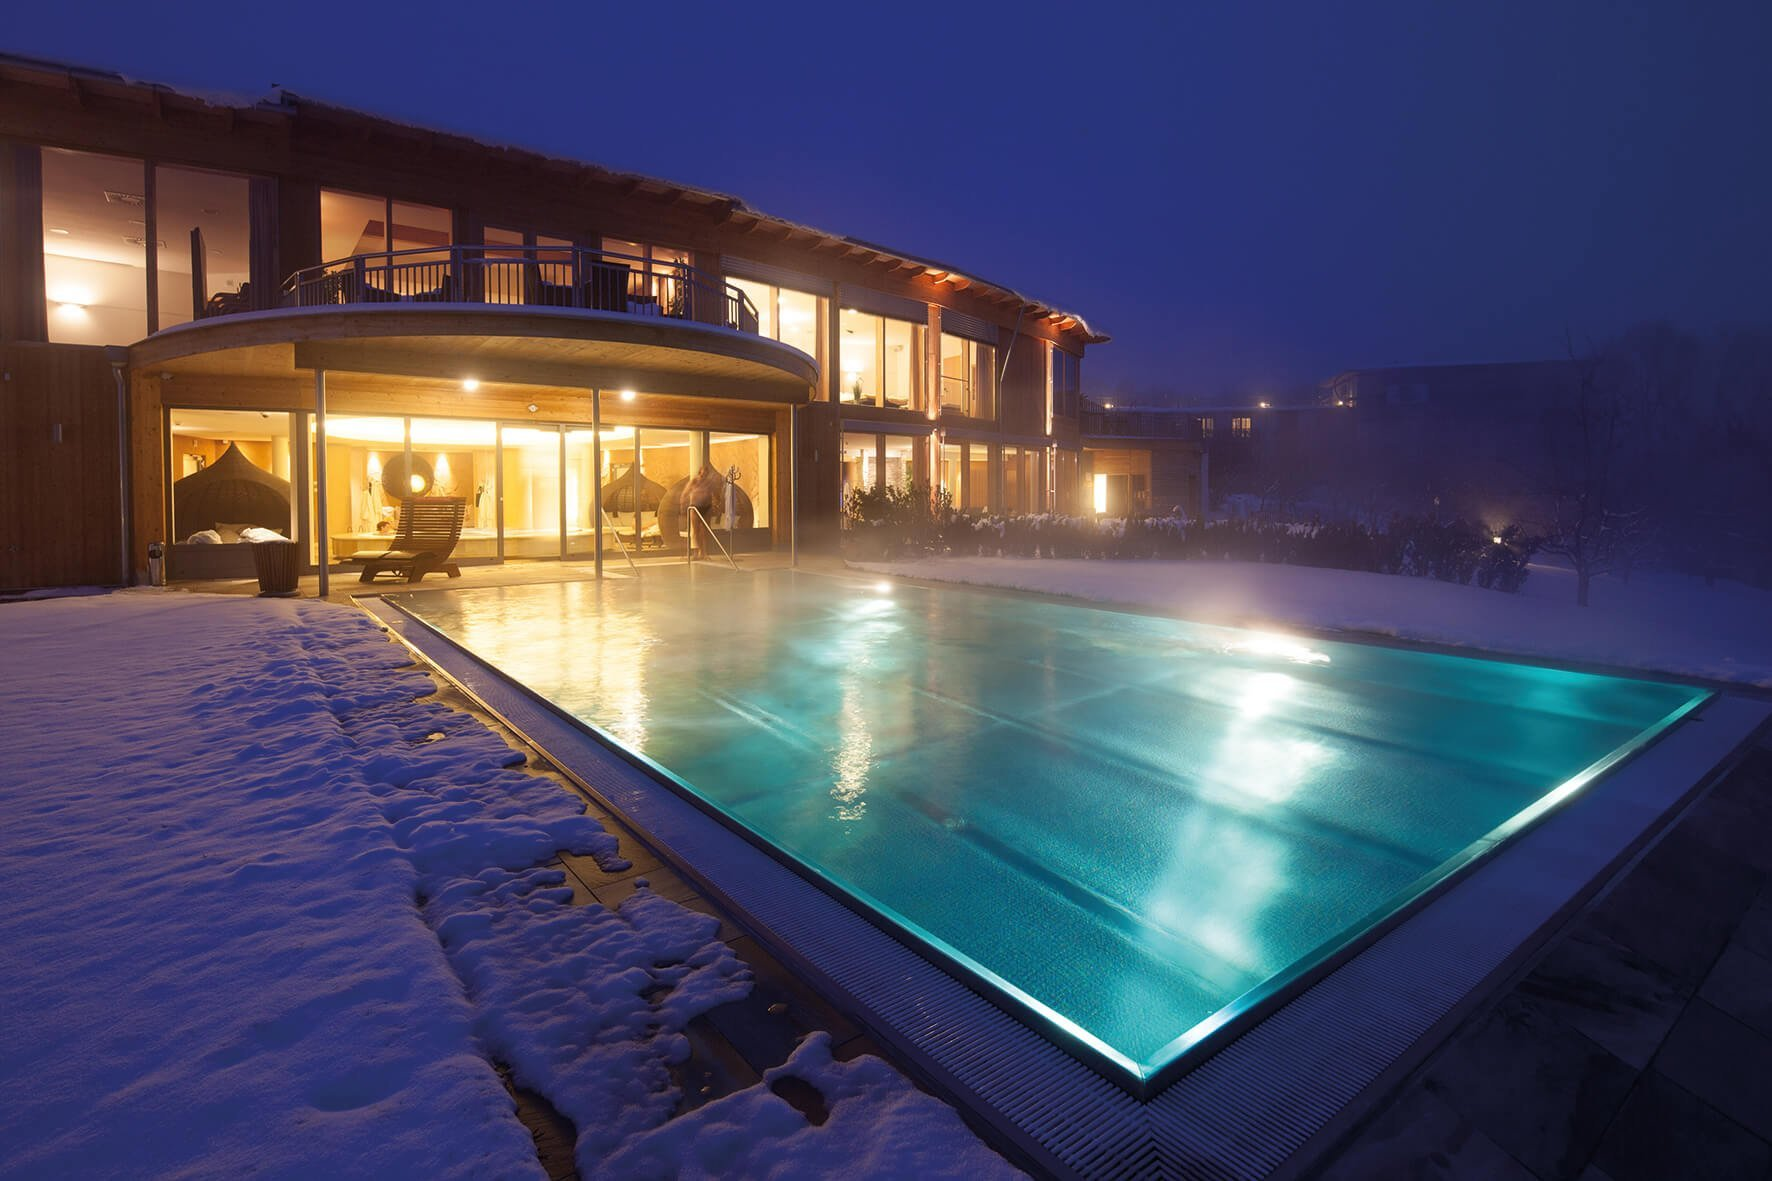 RETTER Bio-Natur-Resort Winter